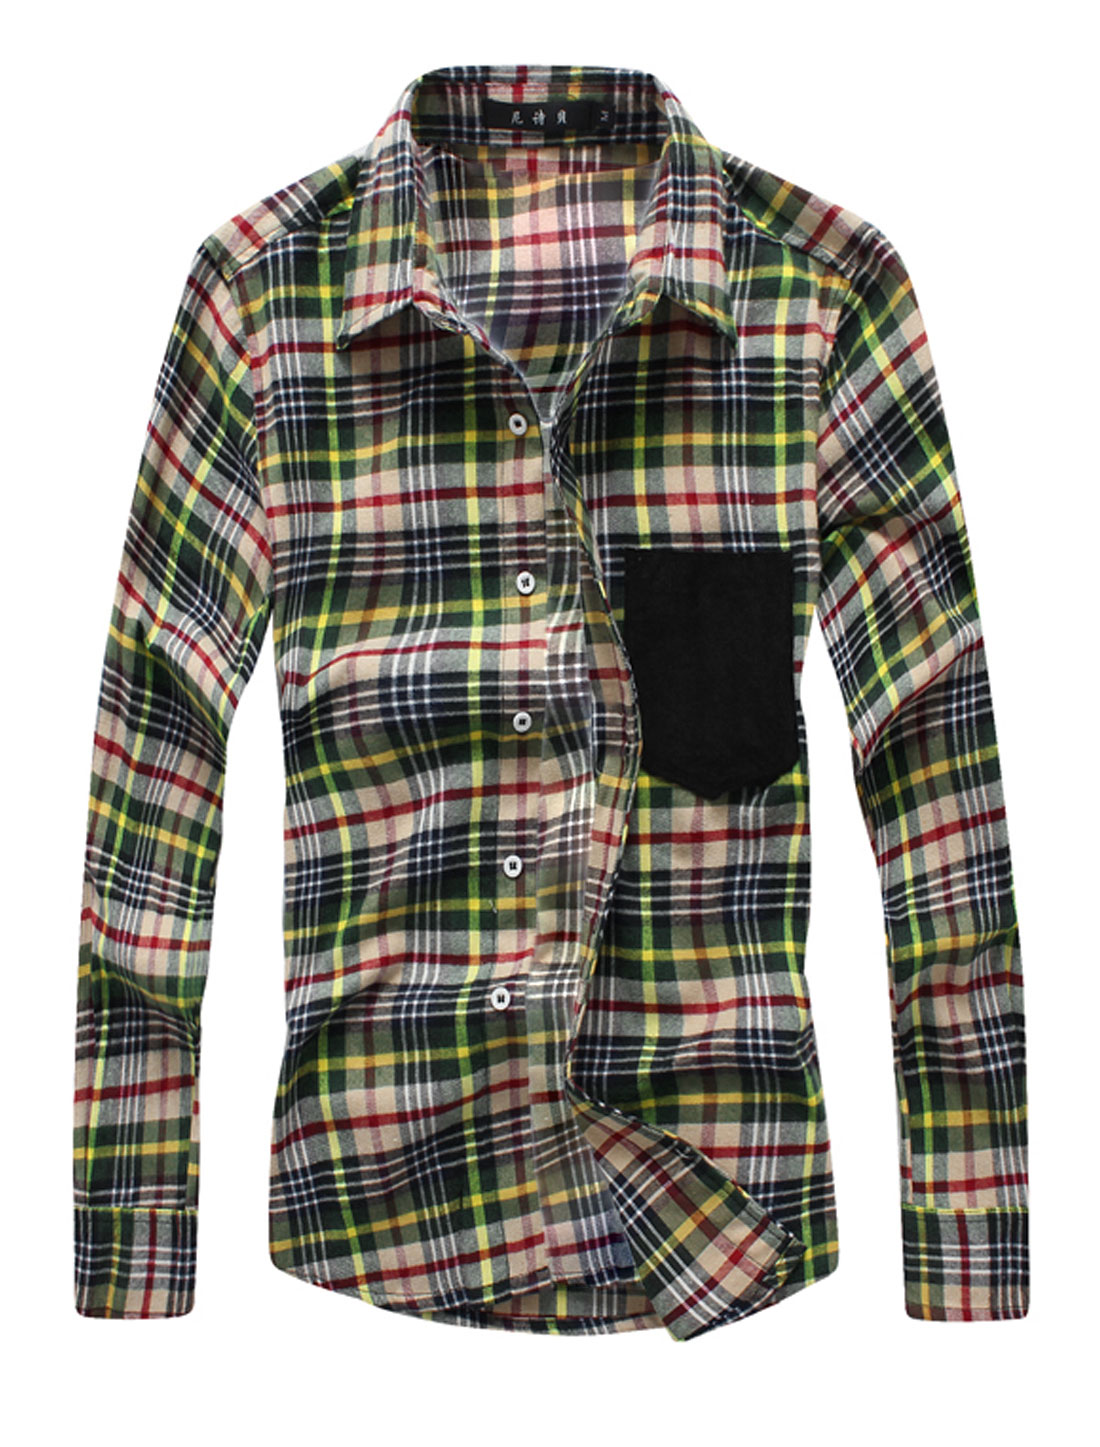 Man New Style Plaids Long Sleeve Button Up Casual Shirts Yellow Green M